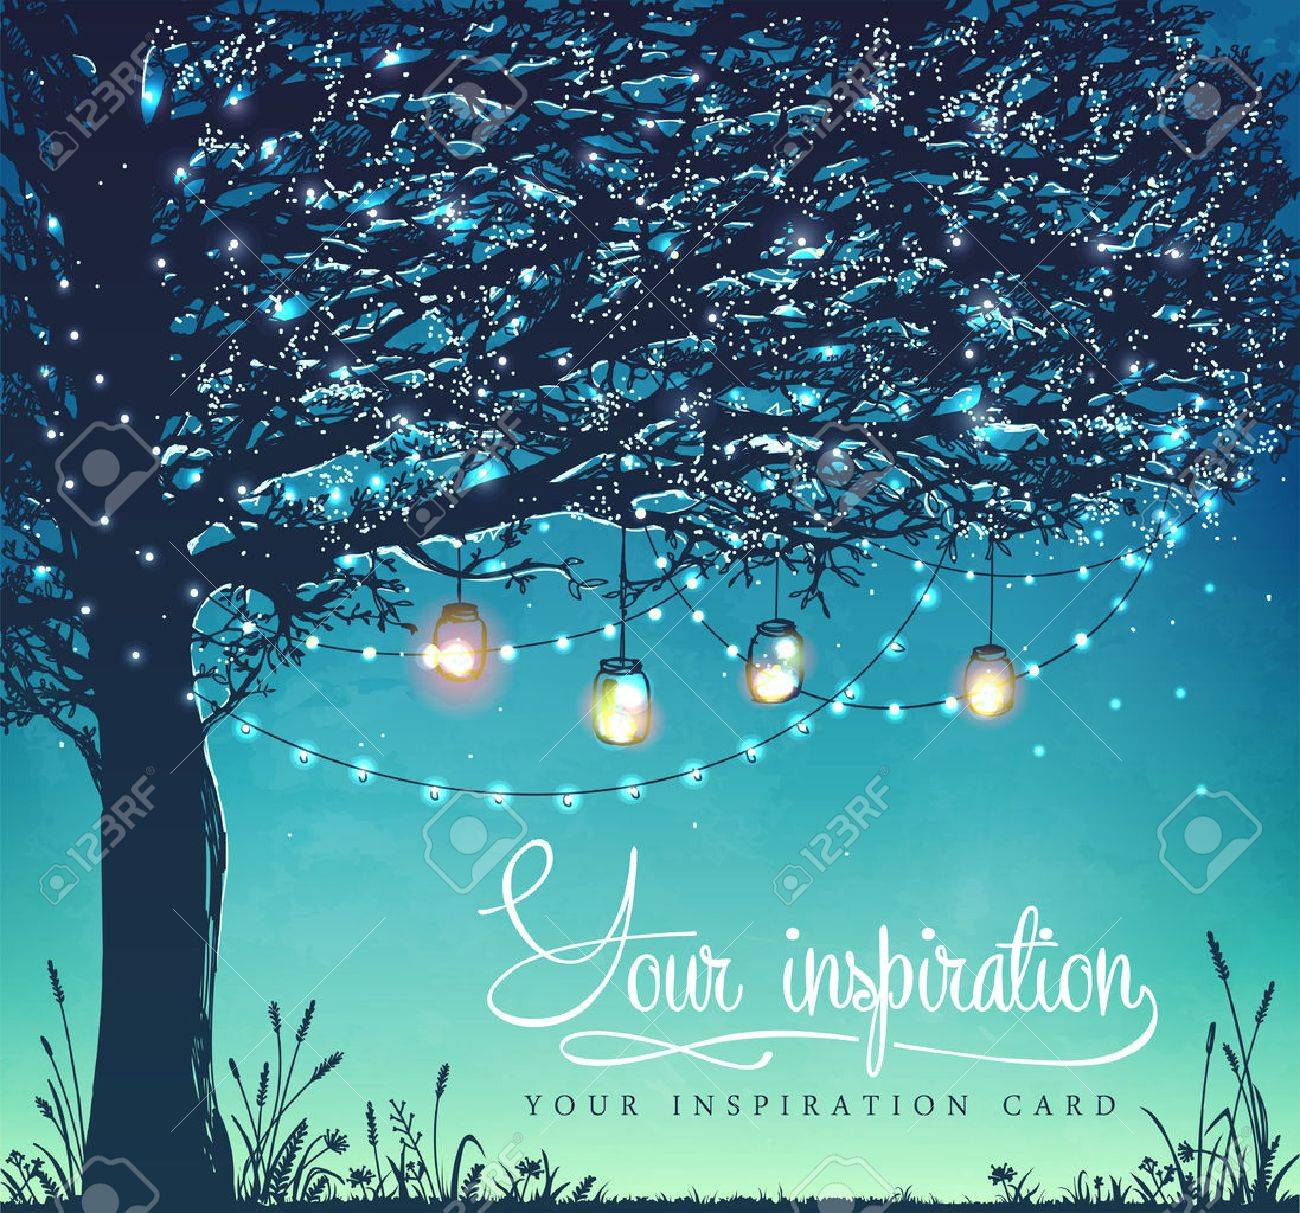 Hanging decorative holiday lights for a back yard party, wedding, date, birthday. Inspiration card. Garden party invitation - 58943902